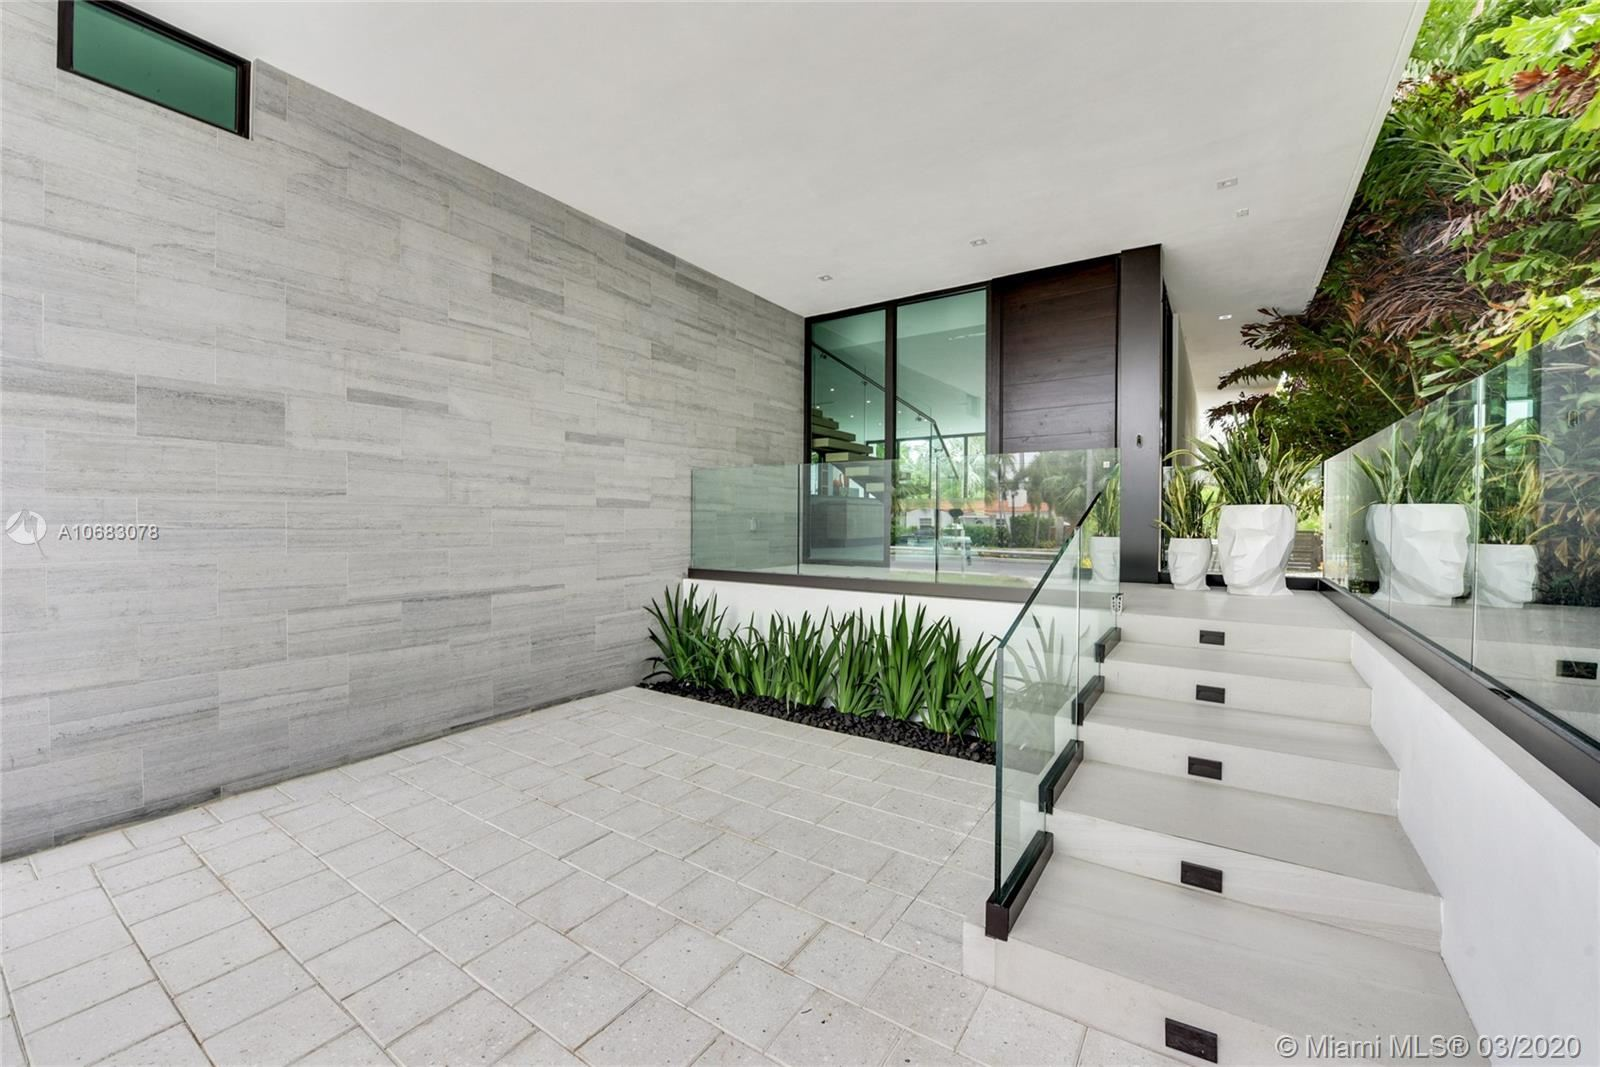 Photo 6 of Listing MLS a10683078 in 272 Palm Ave Miami Beach FL 33139